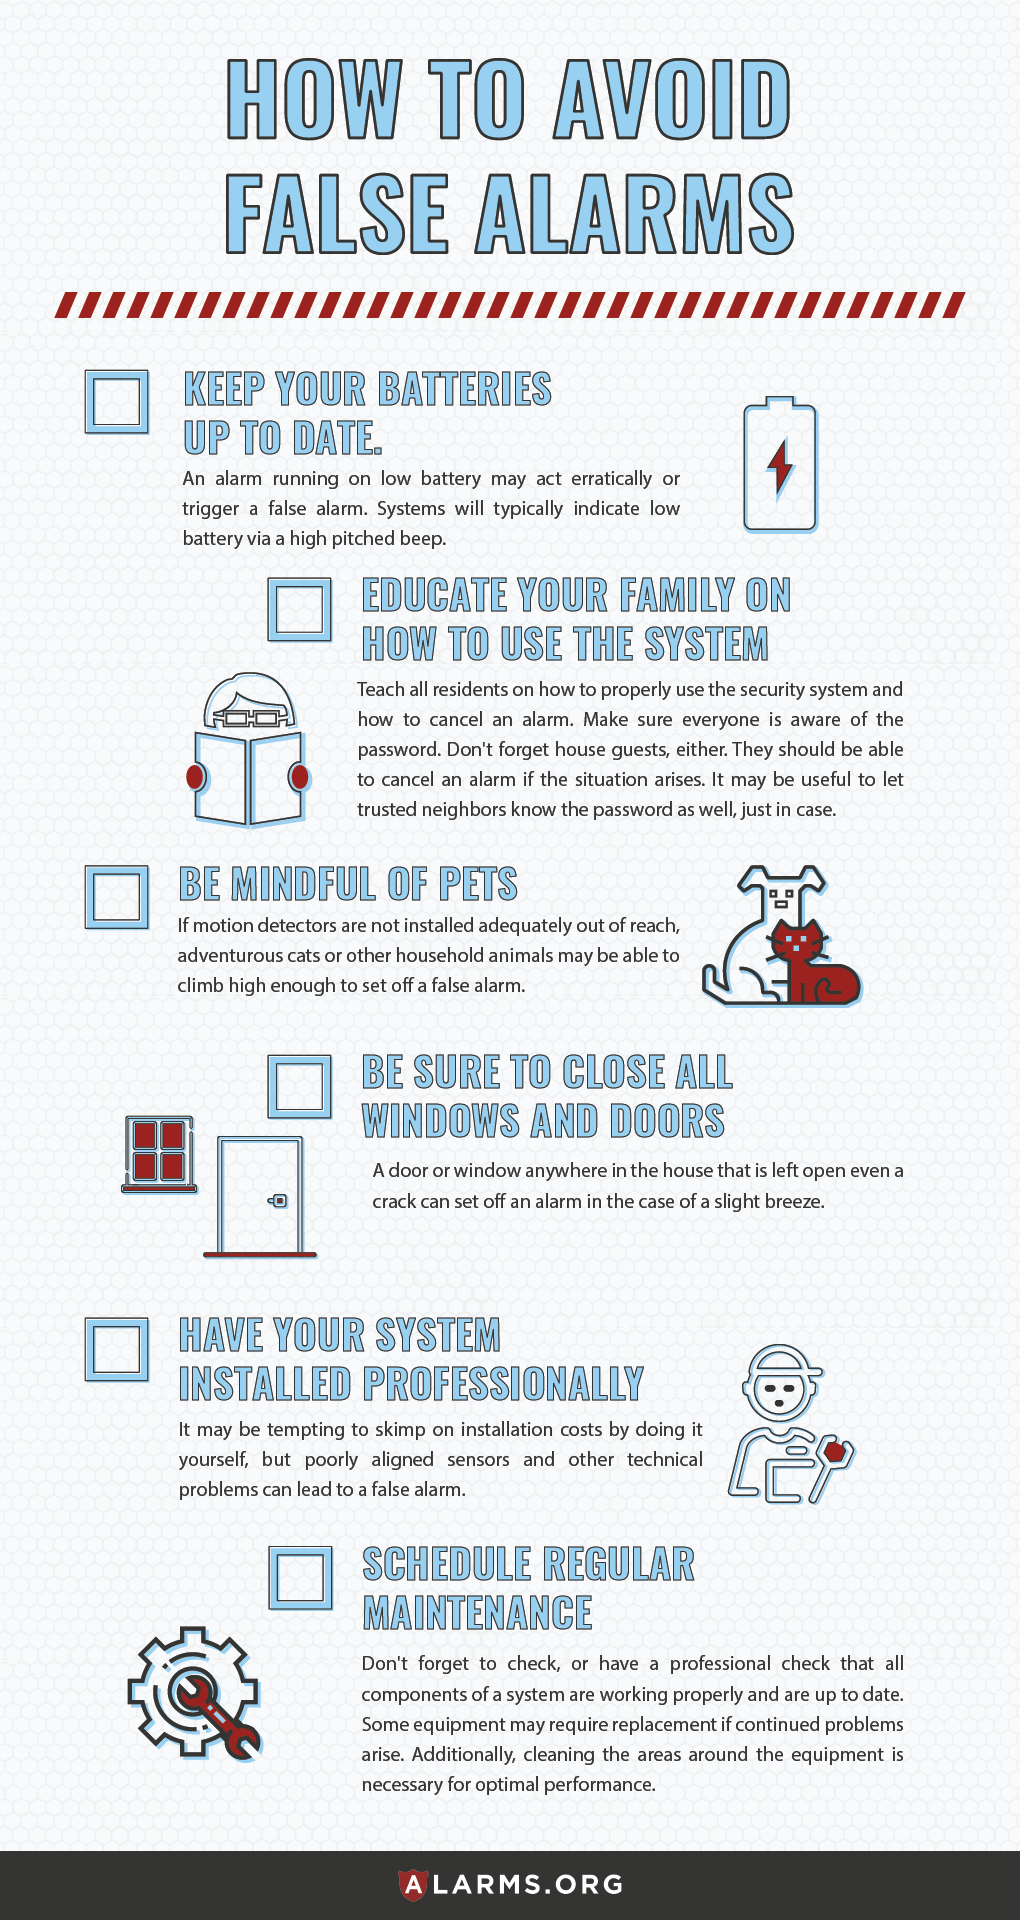 How to Avoid False Alarms Infographic